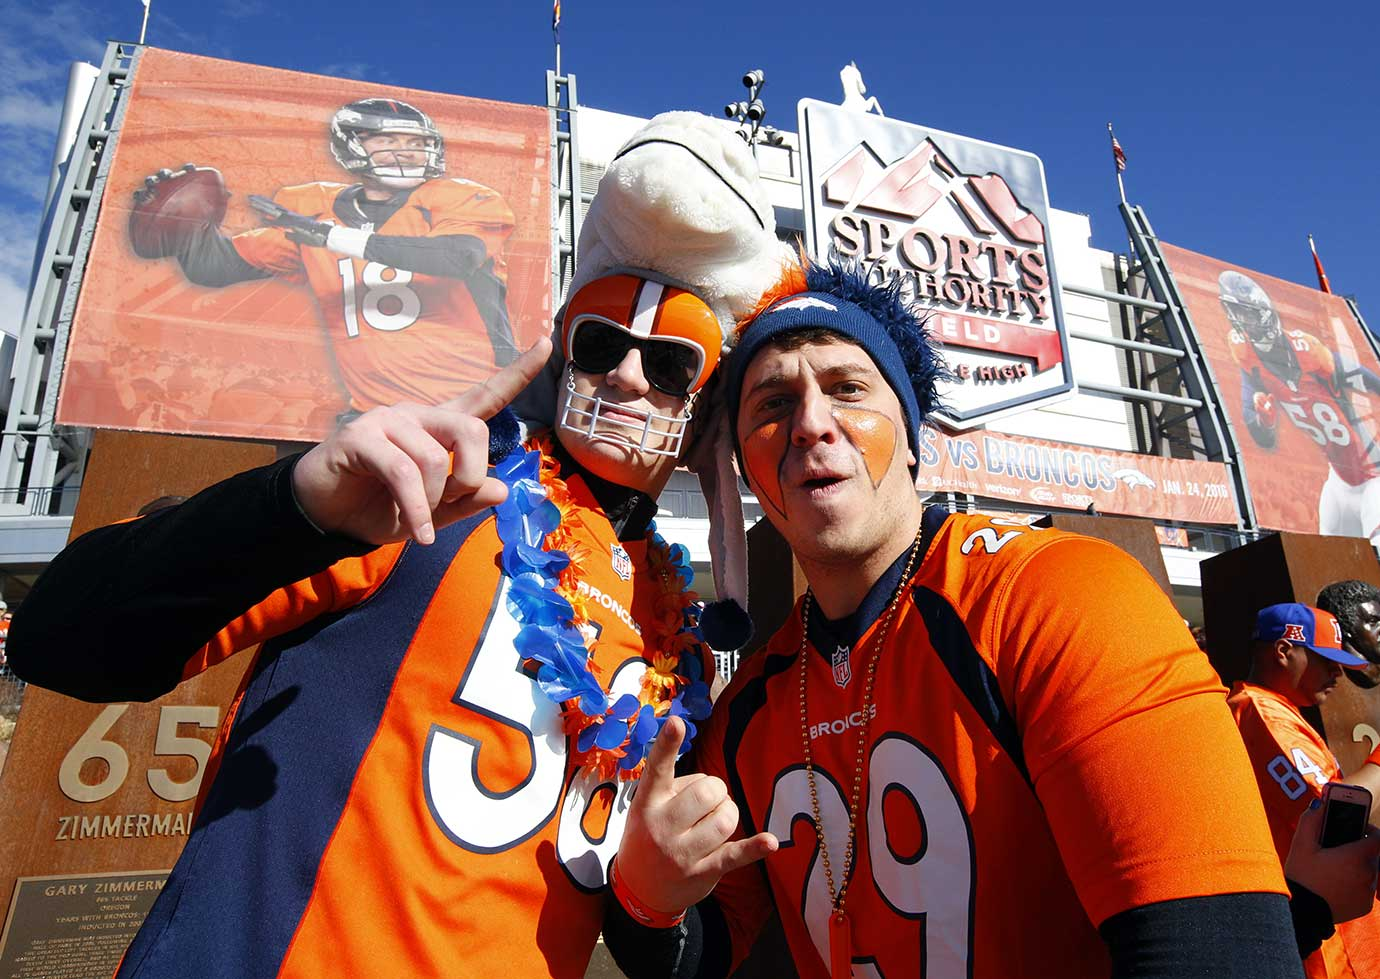 Denver Broncos fans wait to enter the stadium before the NFL AFC Championship game.